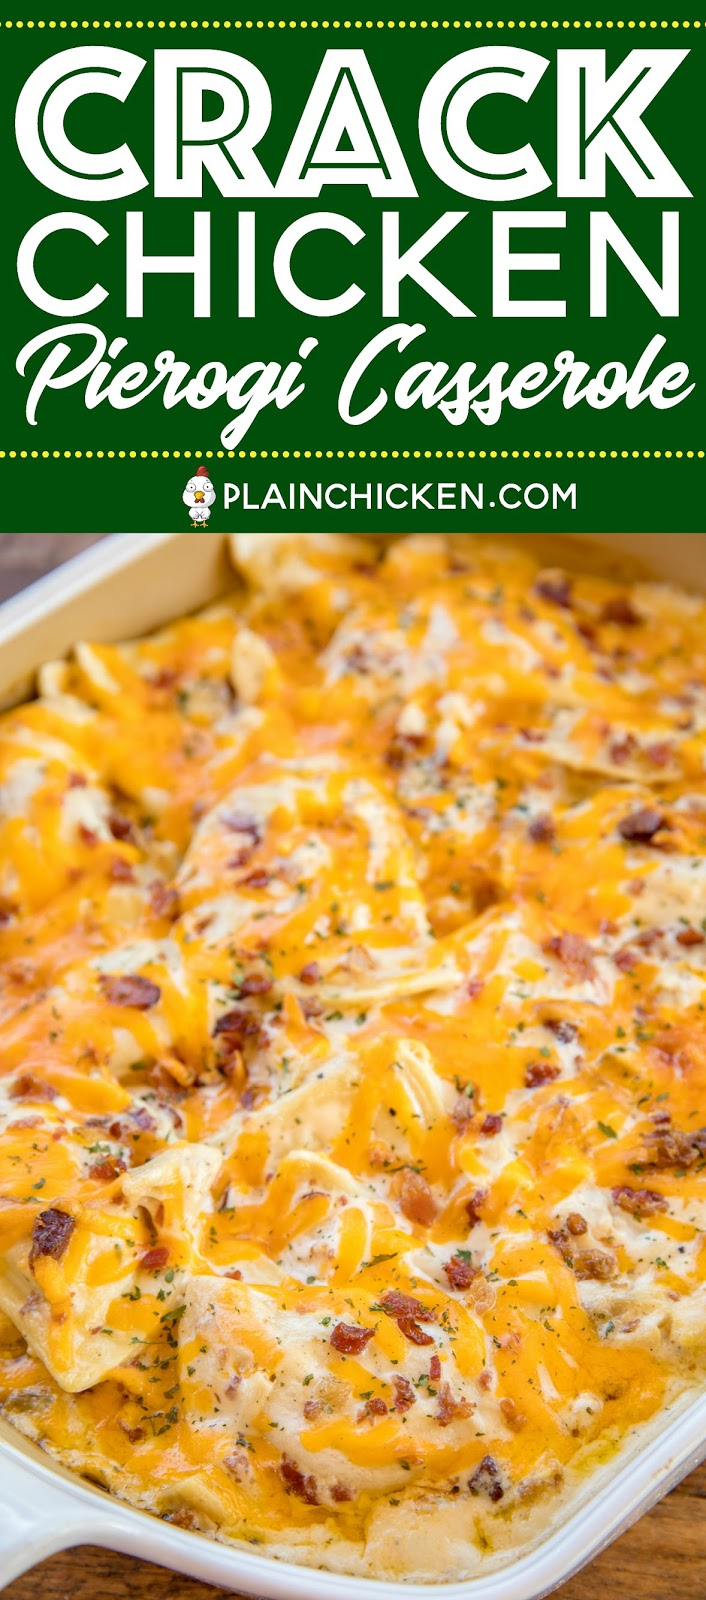 Crack Chicken Pierogi Casserole - CRAZY good!! Frozen pierogies tossed in alfredo sauce, ranch dressing mix, bacon, cheddar and chicken. Can make ahead and refrigerate or freeze for later. Everybody cleaned their plate and asked for seconds!! Weeknight dinner success!! #casserole #chicken #chickencasserole #bacon